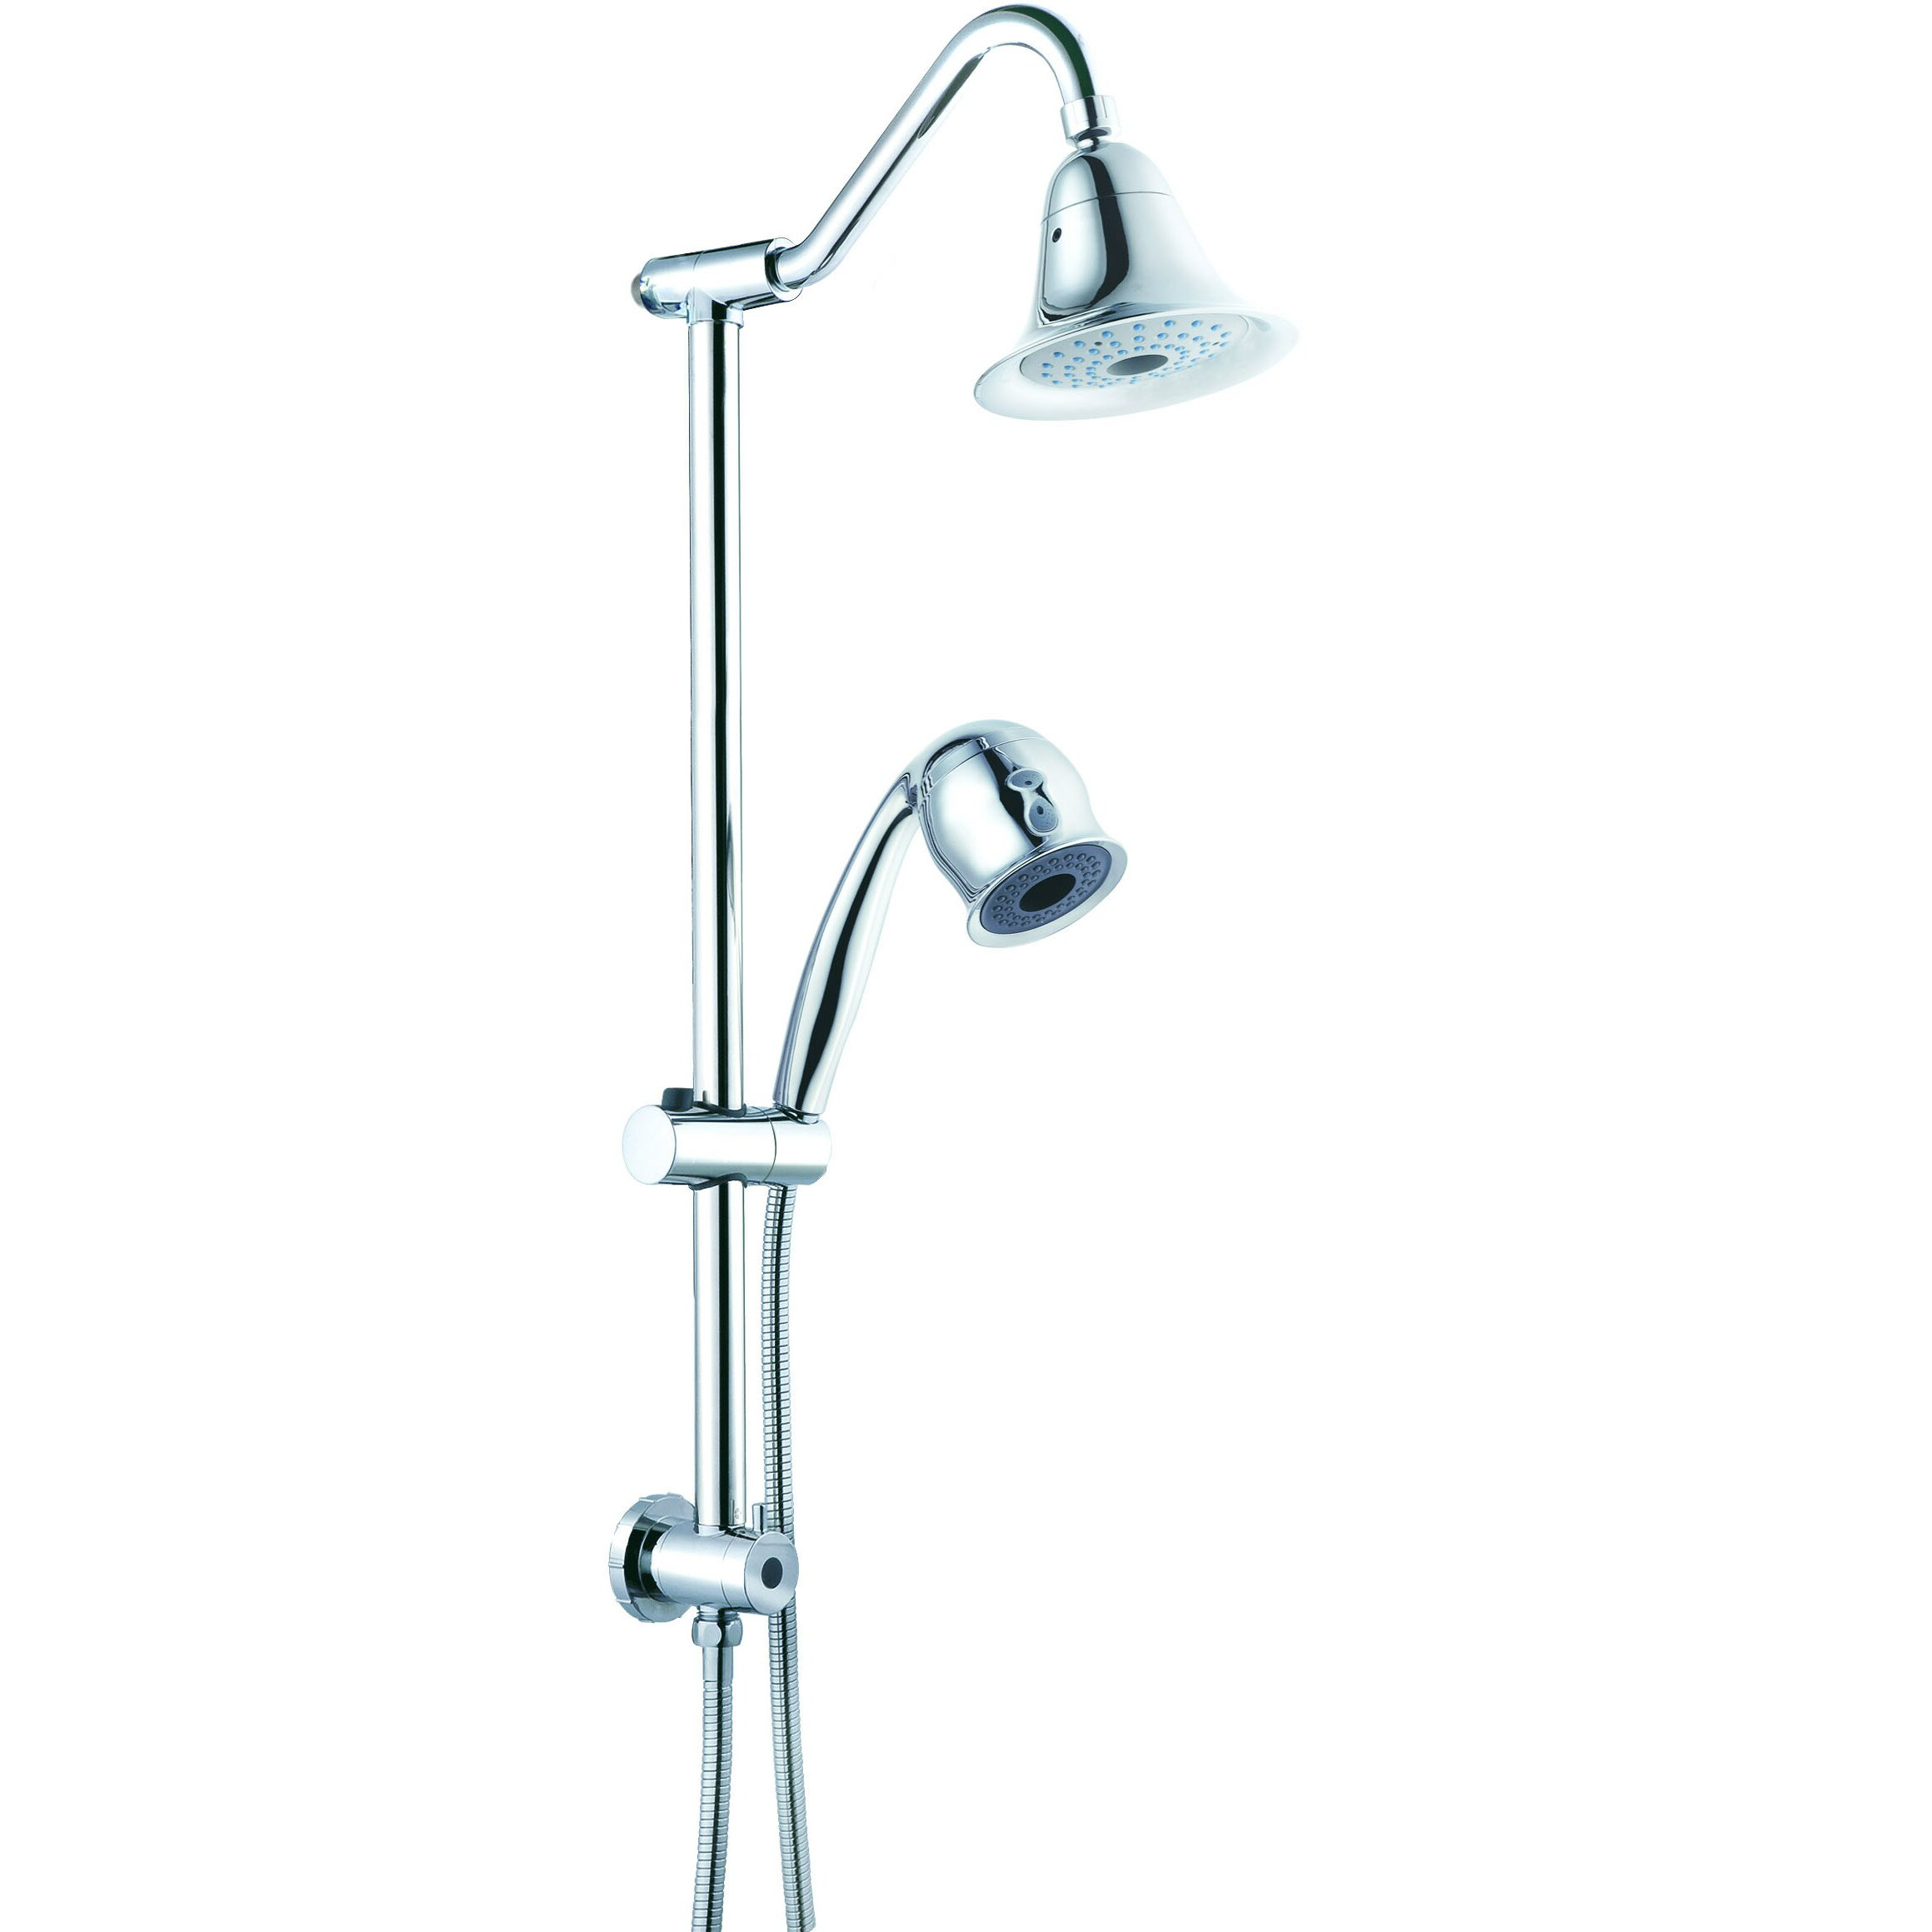 Csi Bathware Sliding Shower Faucet Set Reviews Wayfair